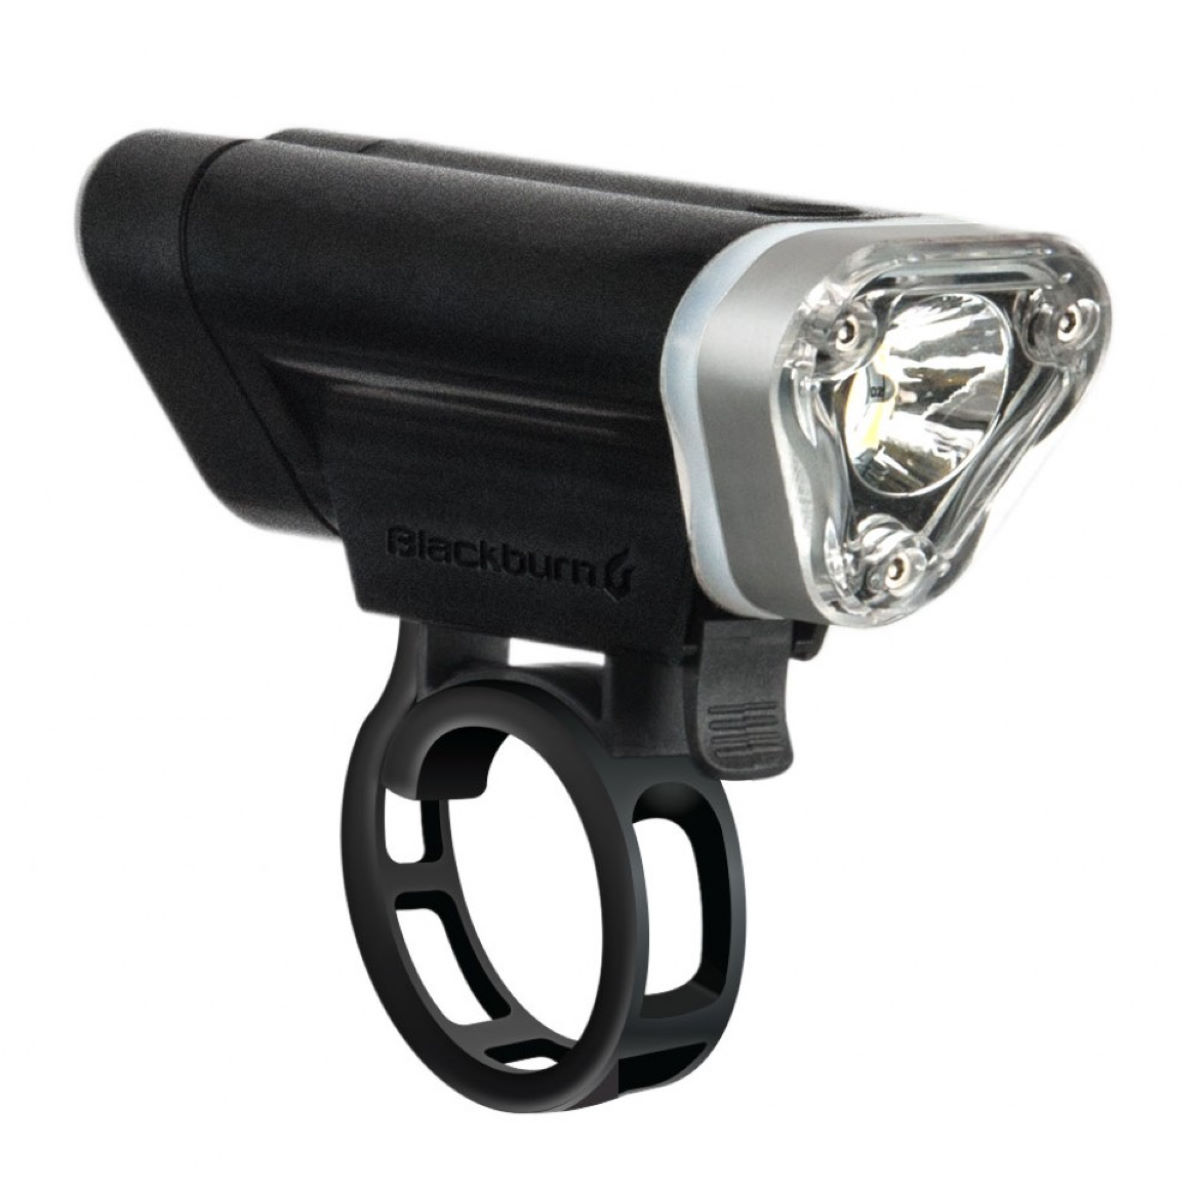 Blackburn Local 75 Front LED Light - Luces delanteras